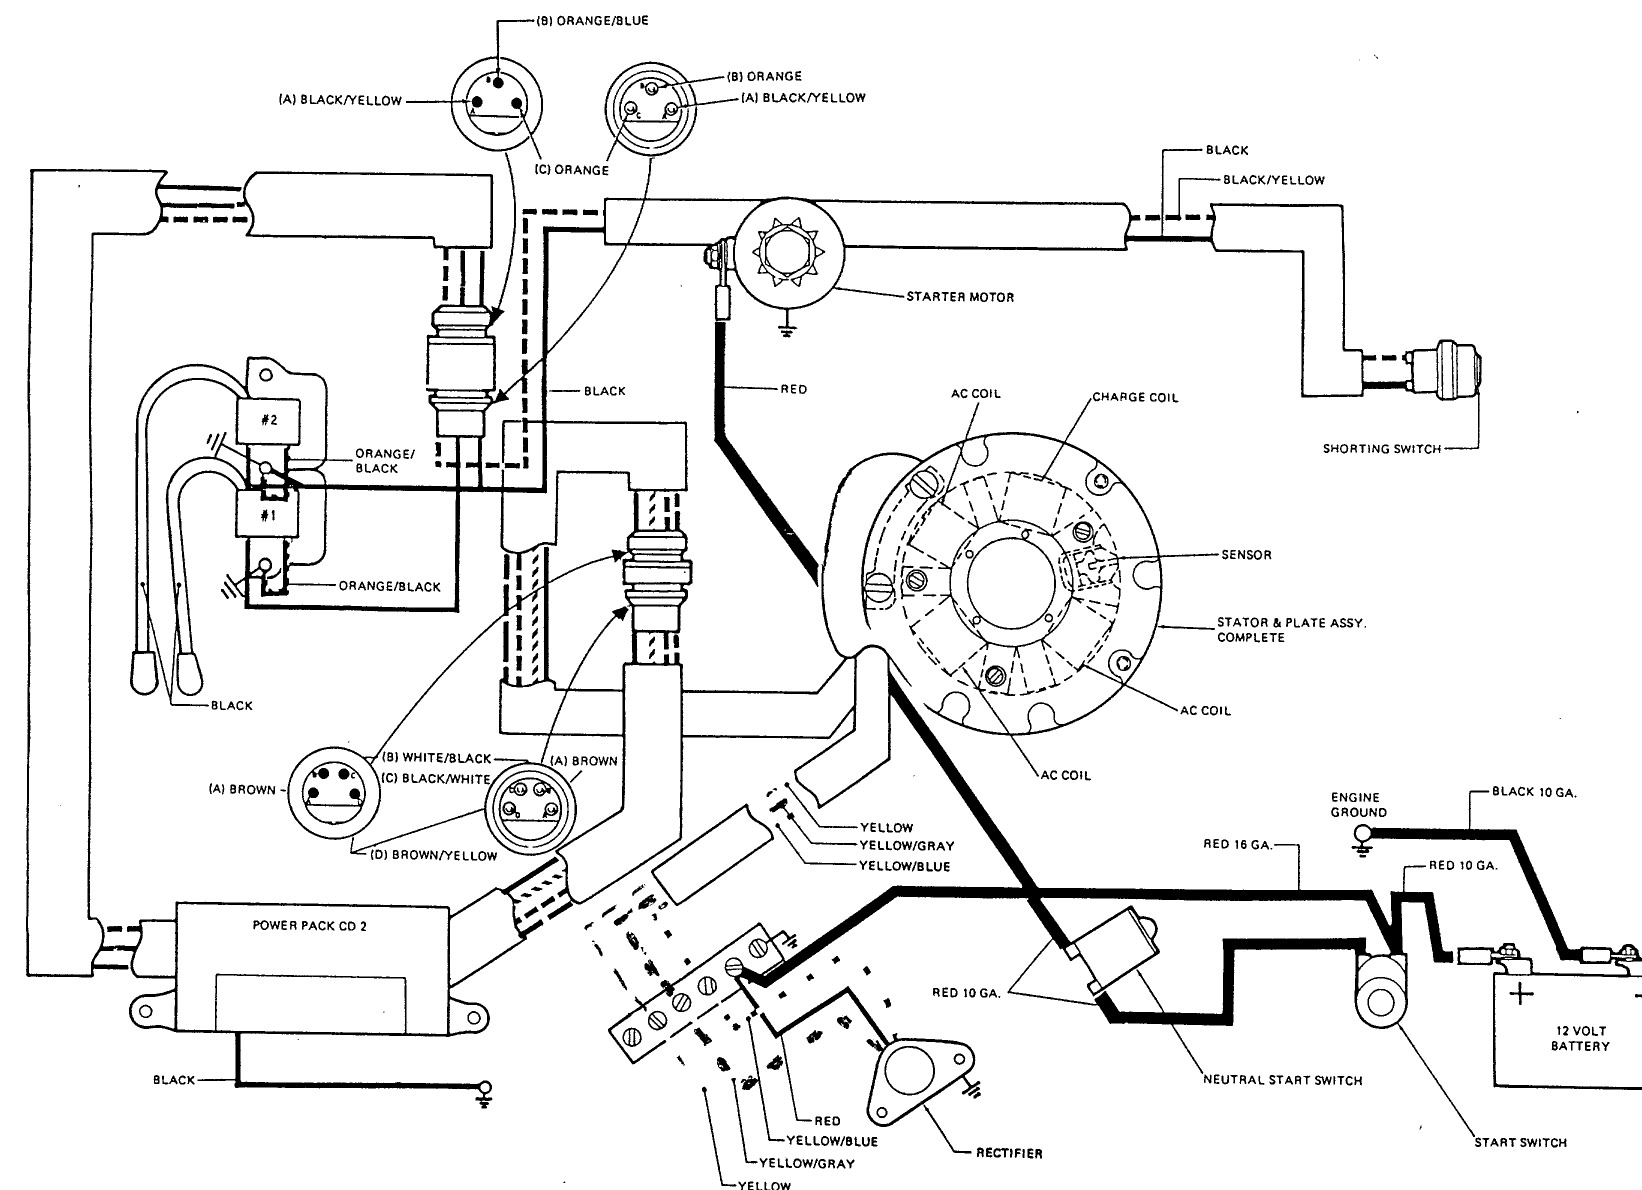 1990 Omc Cobra 4 3 Diagram Manual Guide Wiring 0 Diagrams Rh 55 Treatchildtrauma De 43 Charging